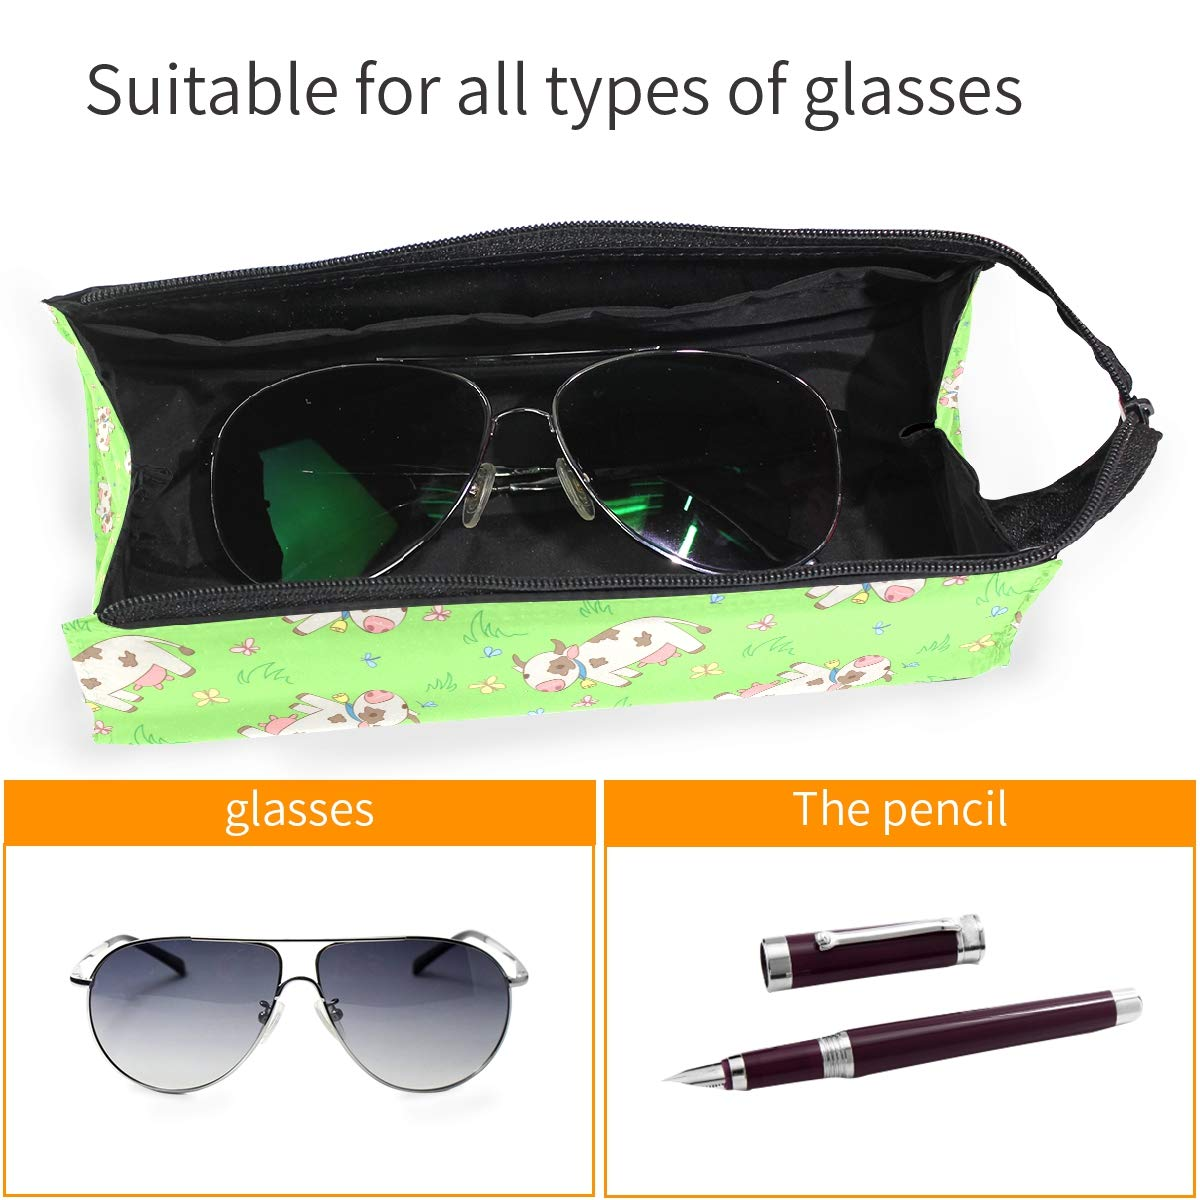 My Little Nest Eyeglass Sunglasses Holder Pouch Bag Cartoon Cows Multi Function Zipper Pen Case Pencil Bag Organizer